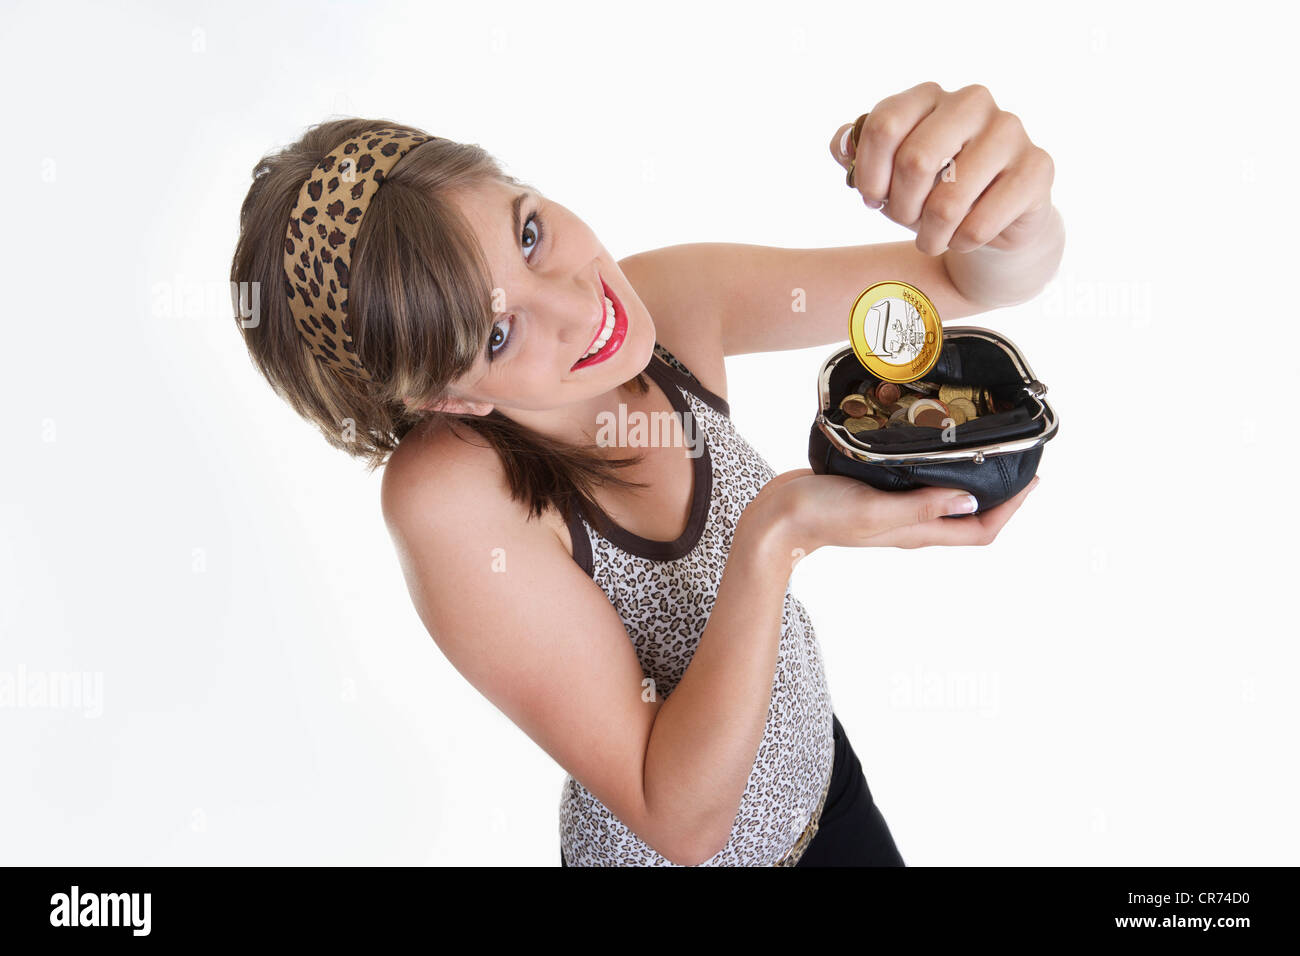 Young woman holding wallet with one euro coin, smiling, portrait - Stock Image